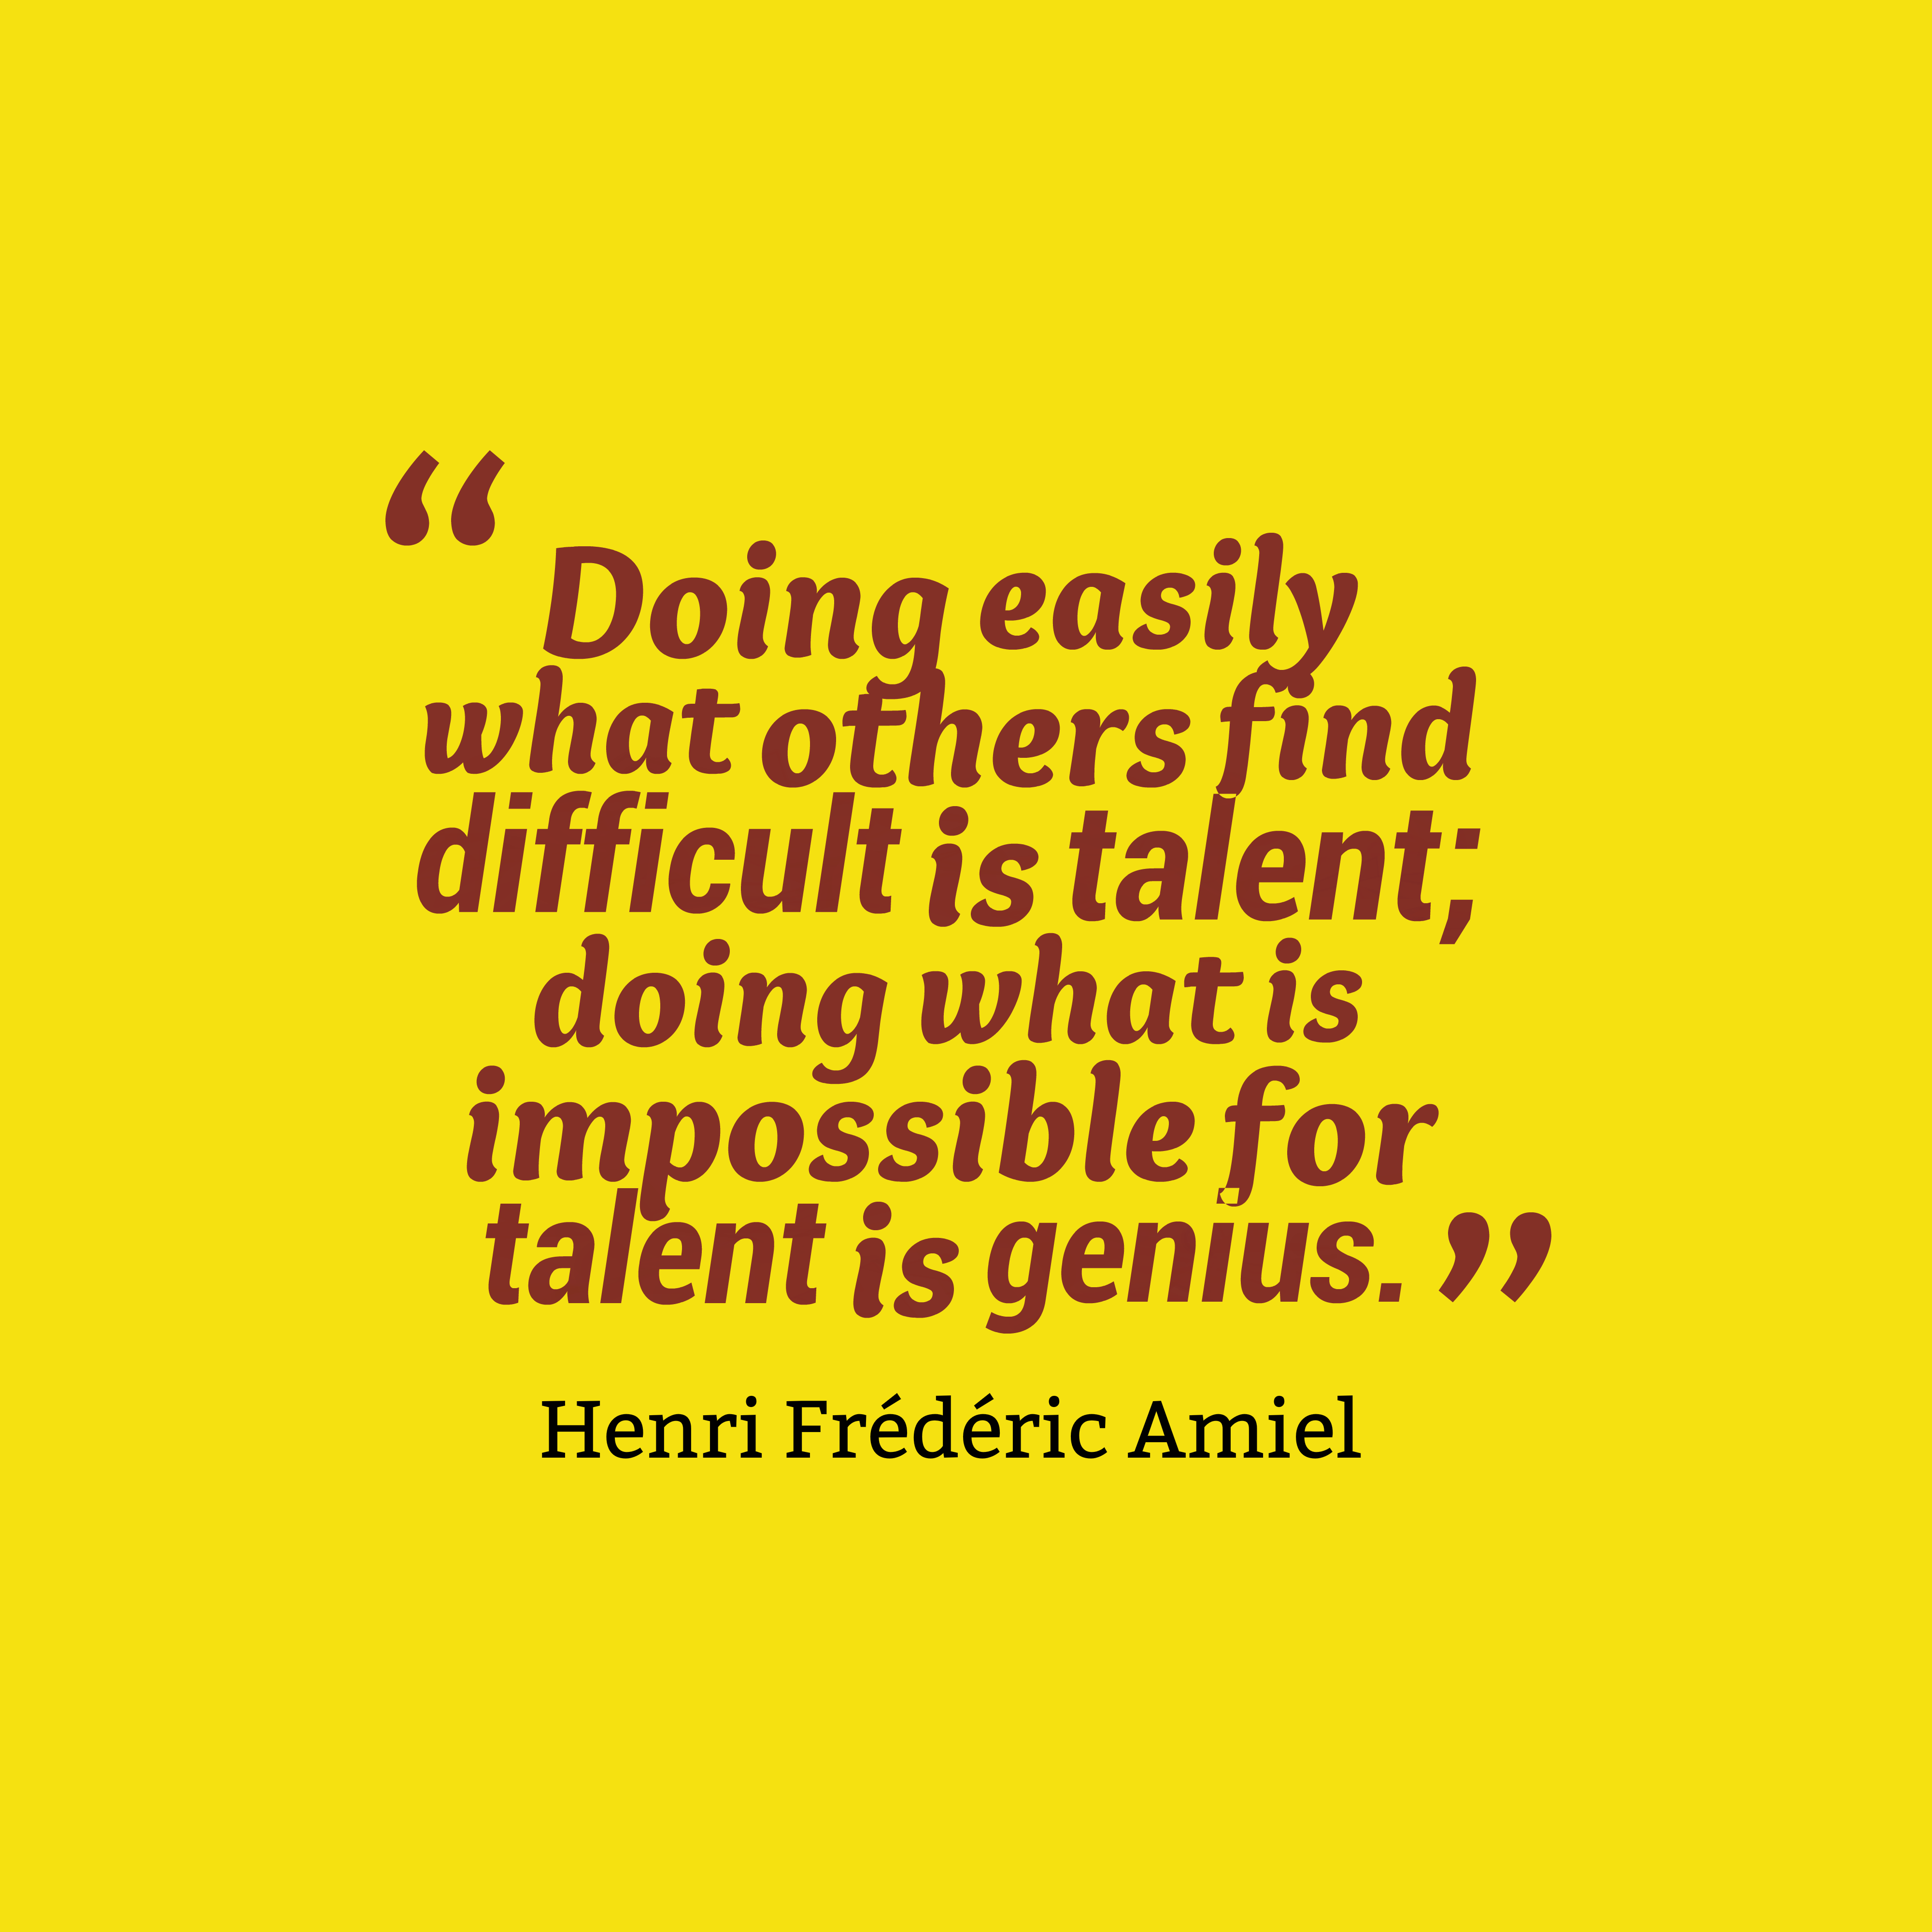 Quotes image of Doing easily what others find difficult is talent; doing what is impossible for talent is genius.